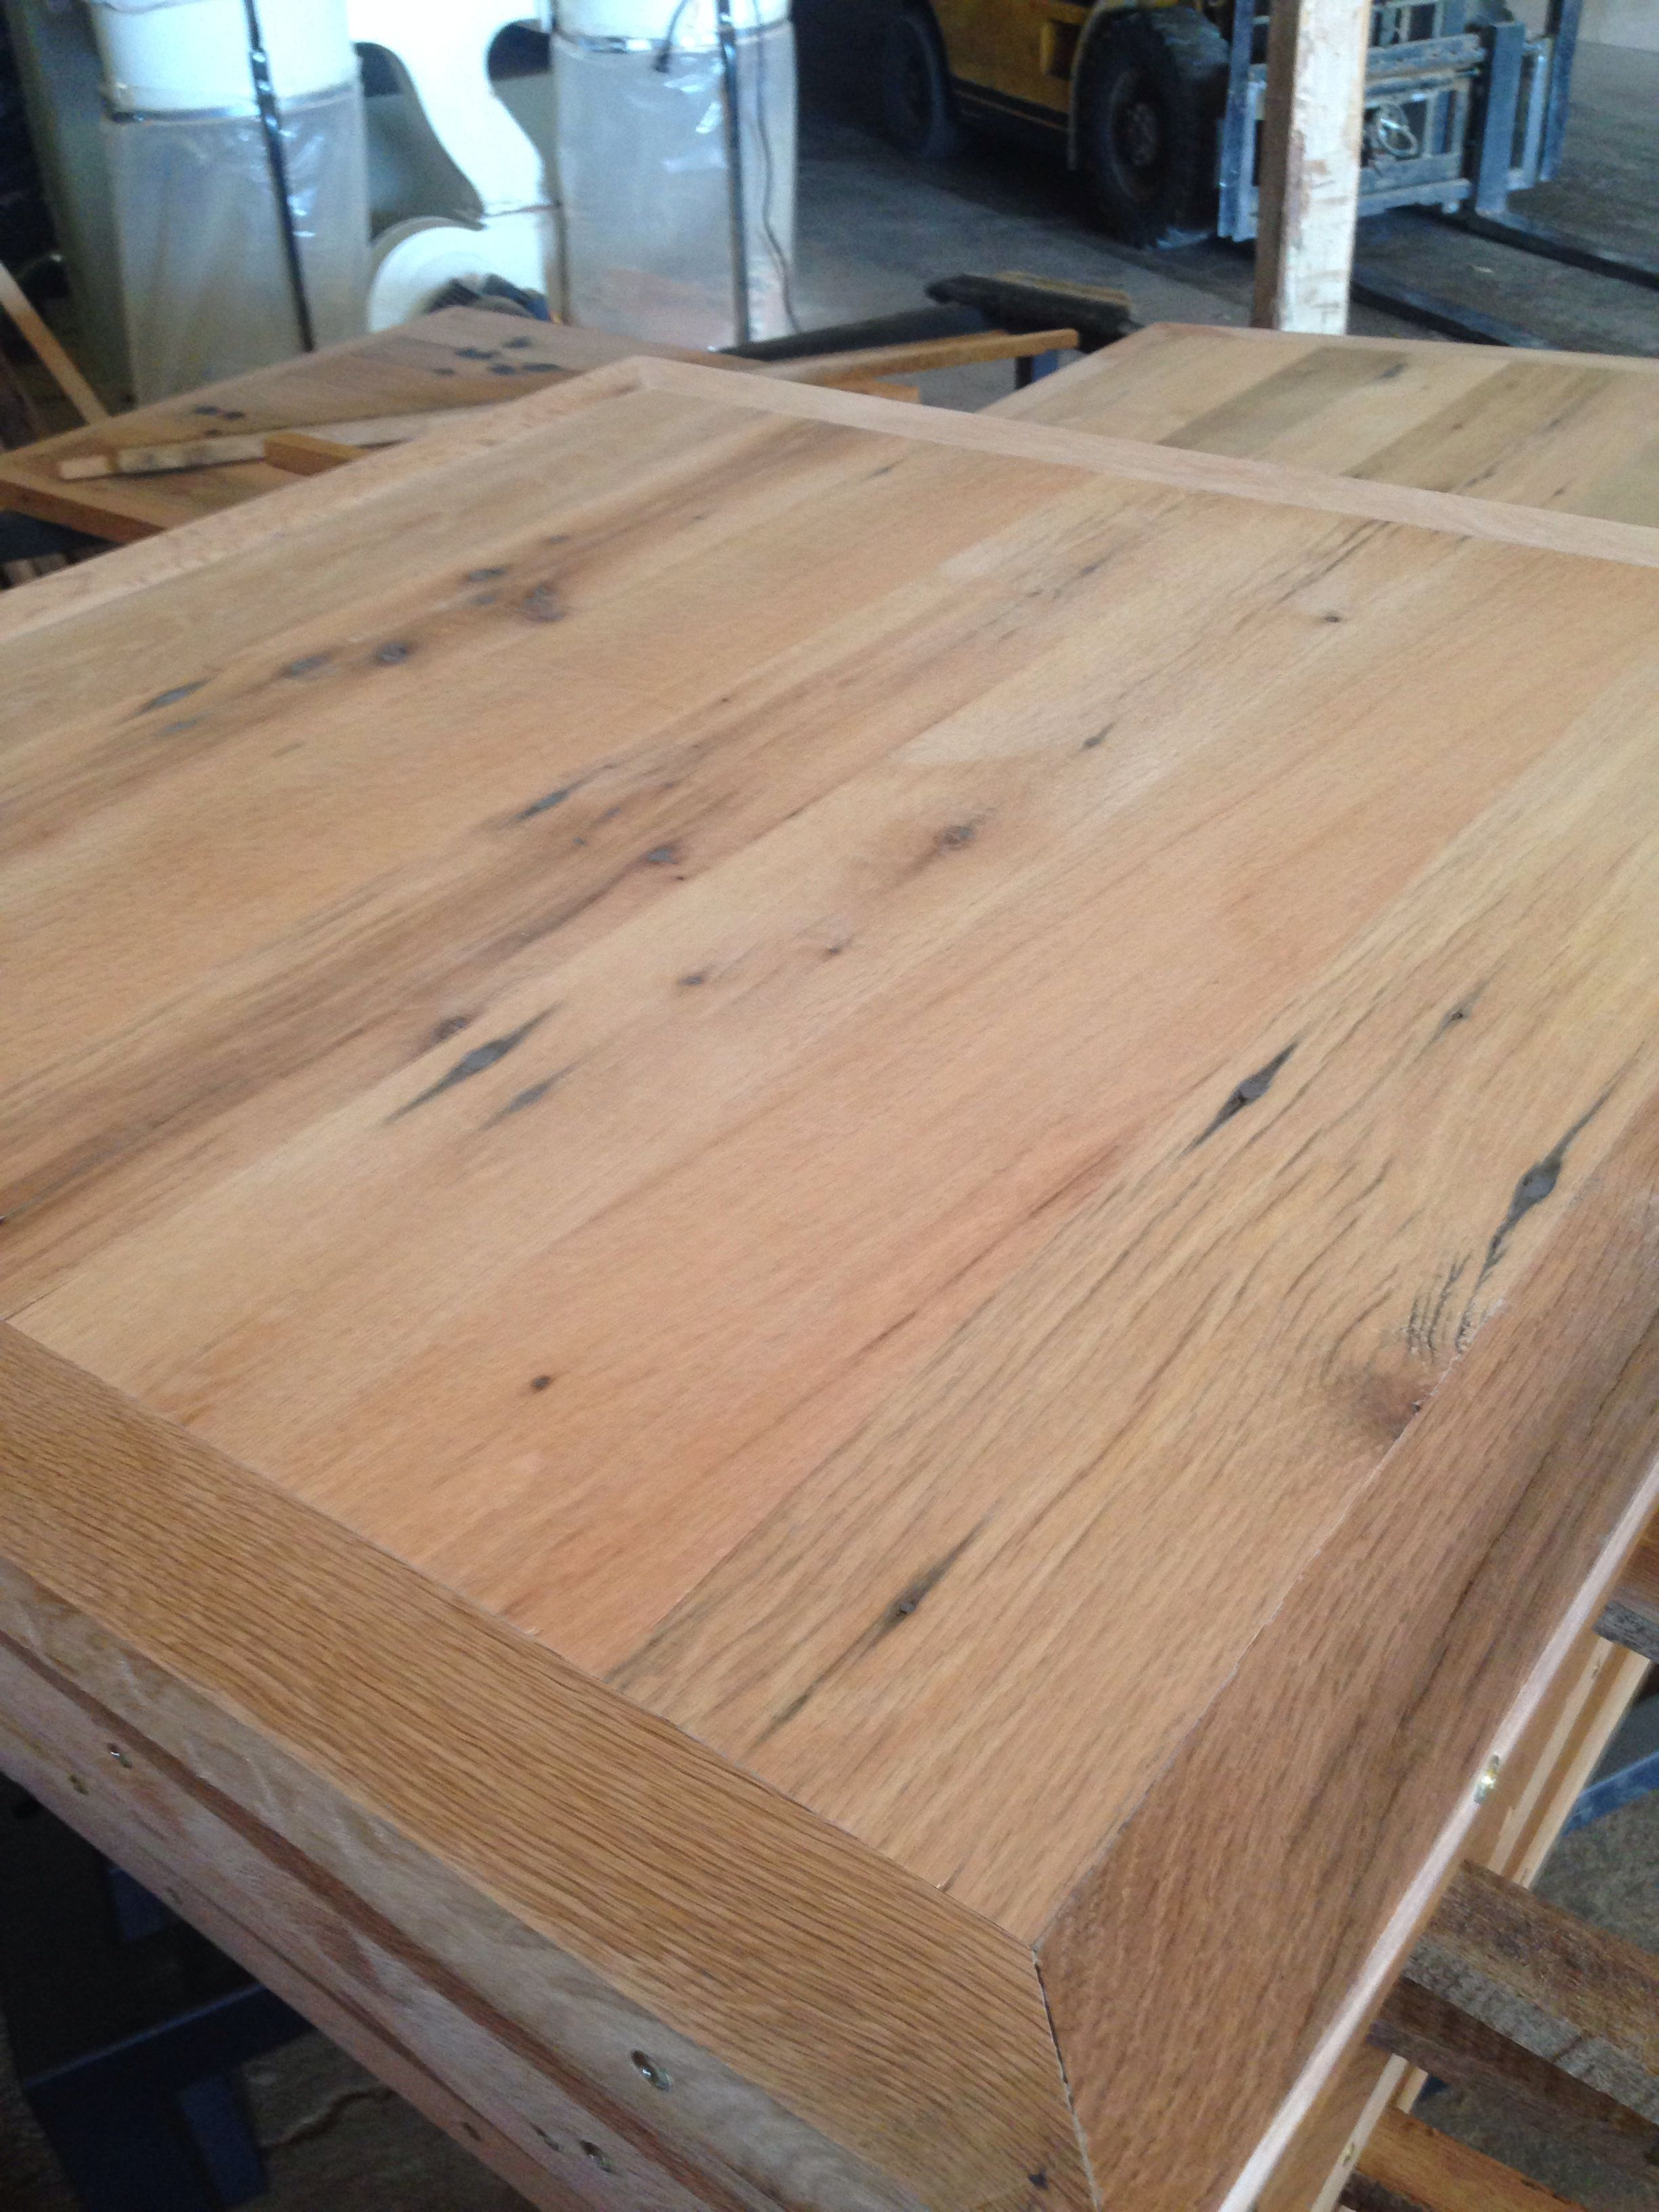 Unfinished Select Barn Oak Restaurant Table Tops